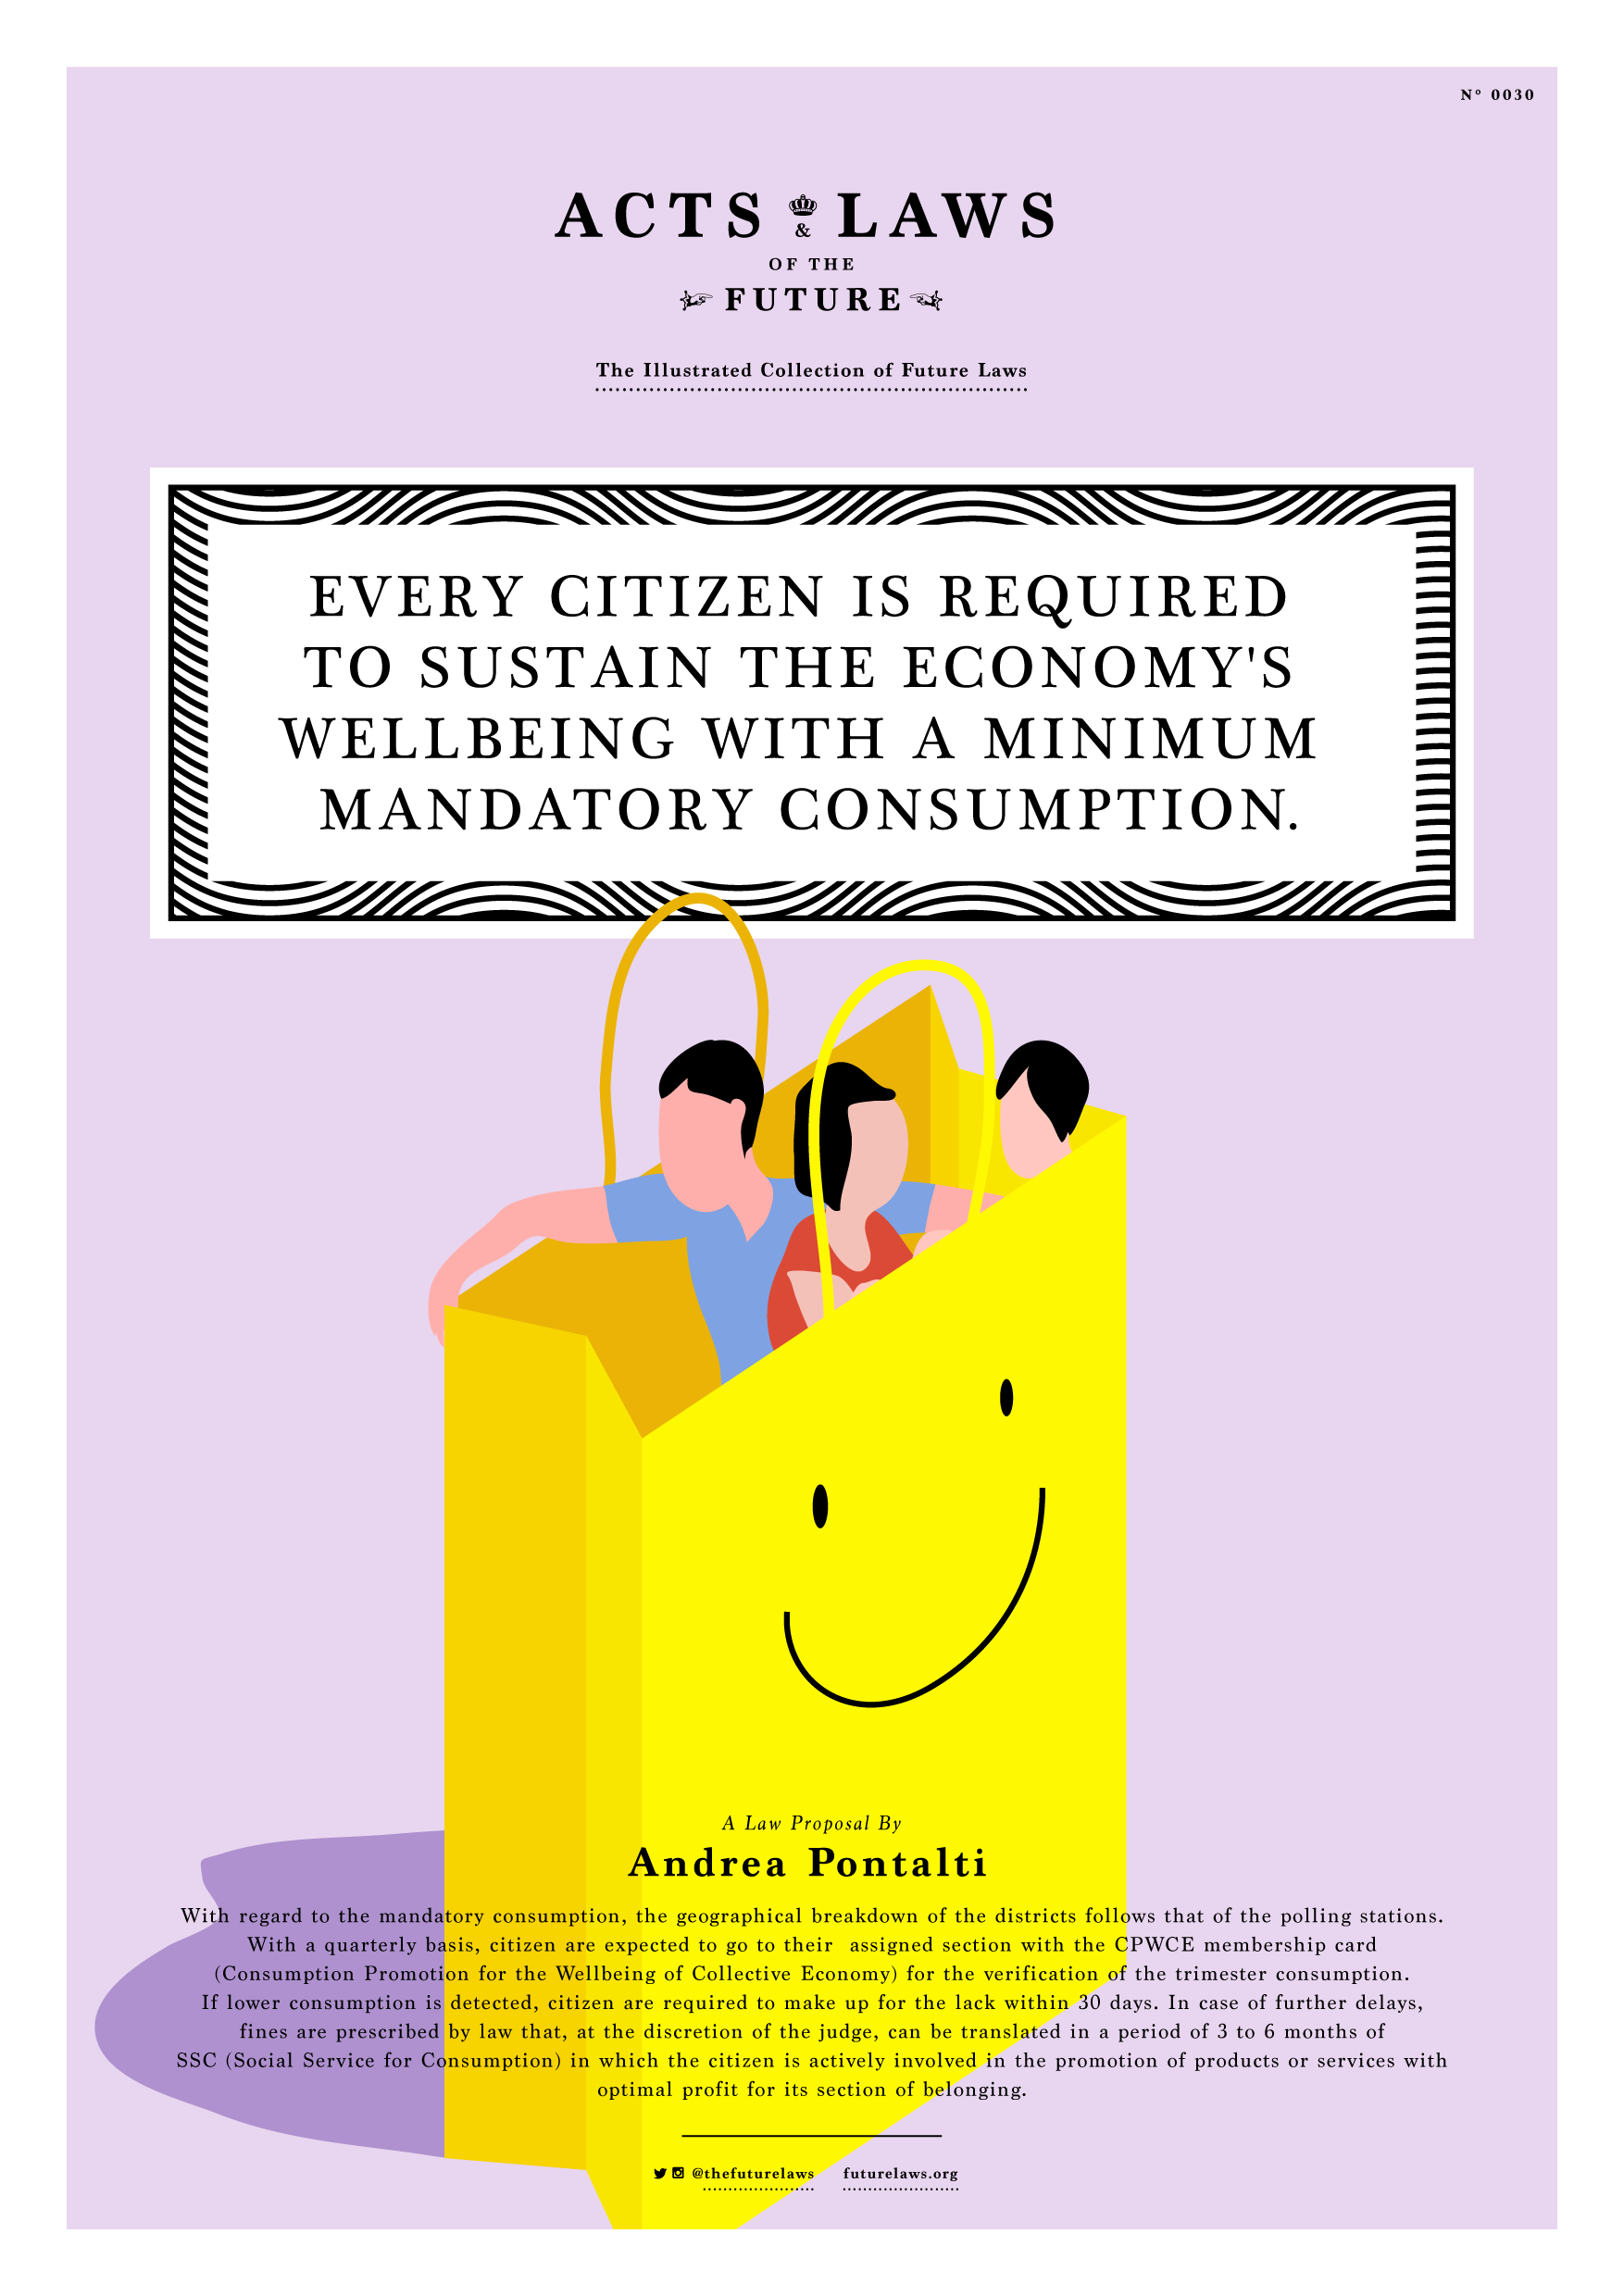 Every citizen is required to sustain the economy's wellbeing with a minimum mandatory consumption.